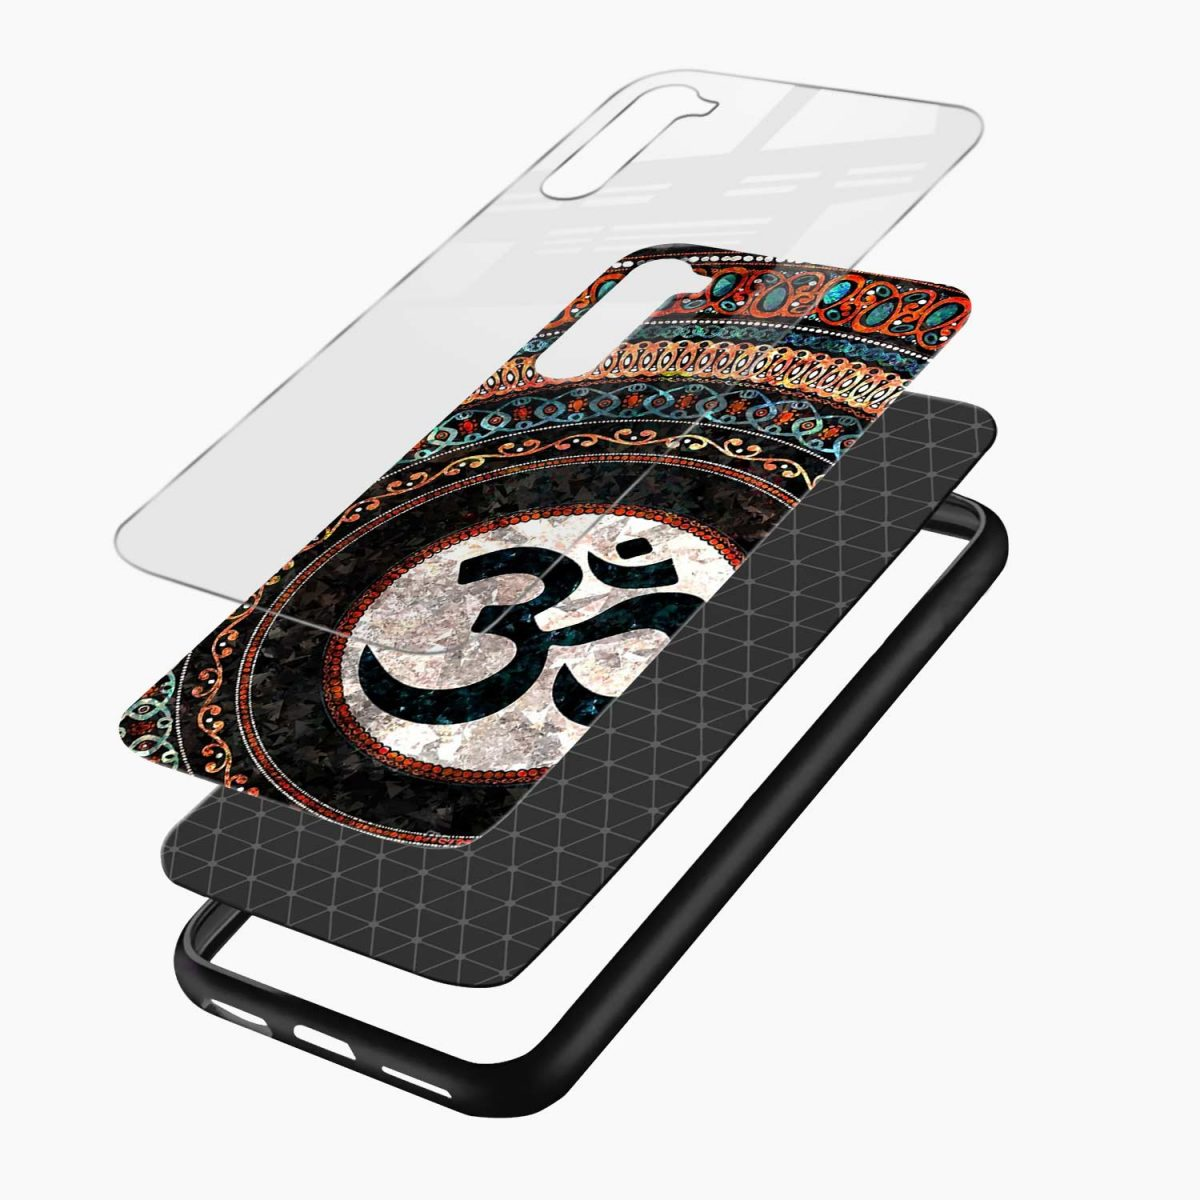 om glass layers view oneplus nord back cover